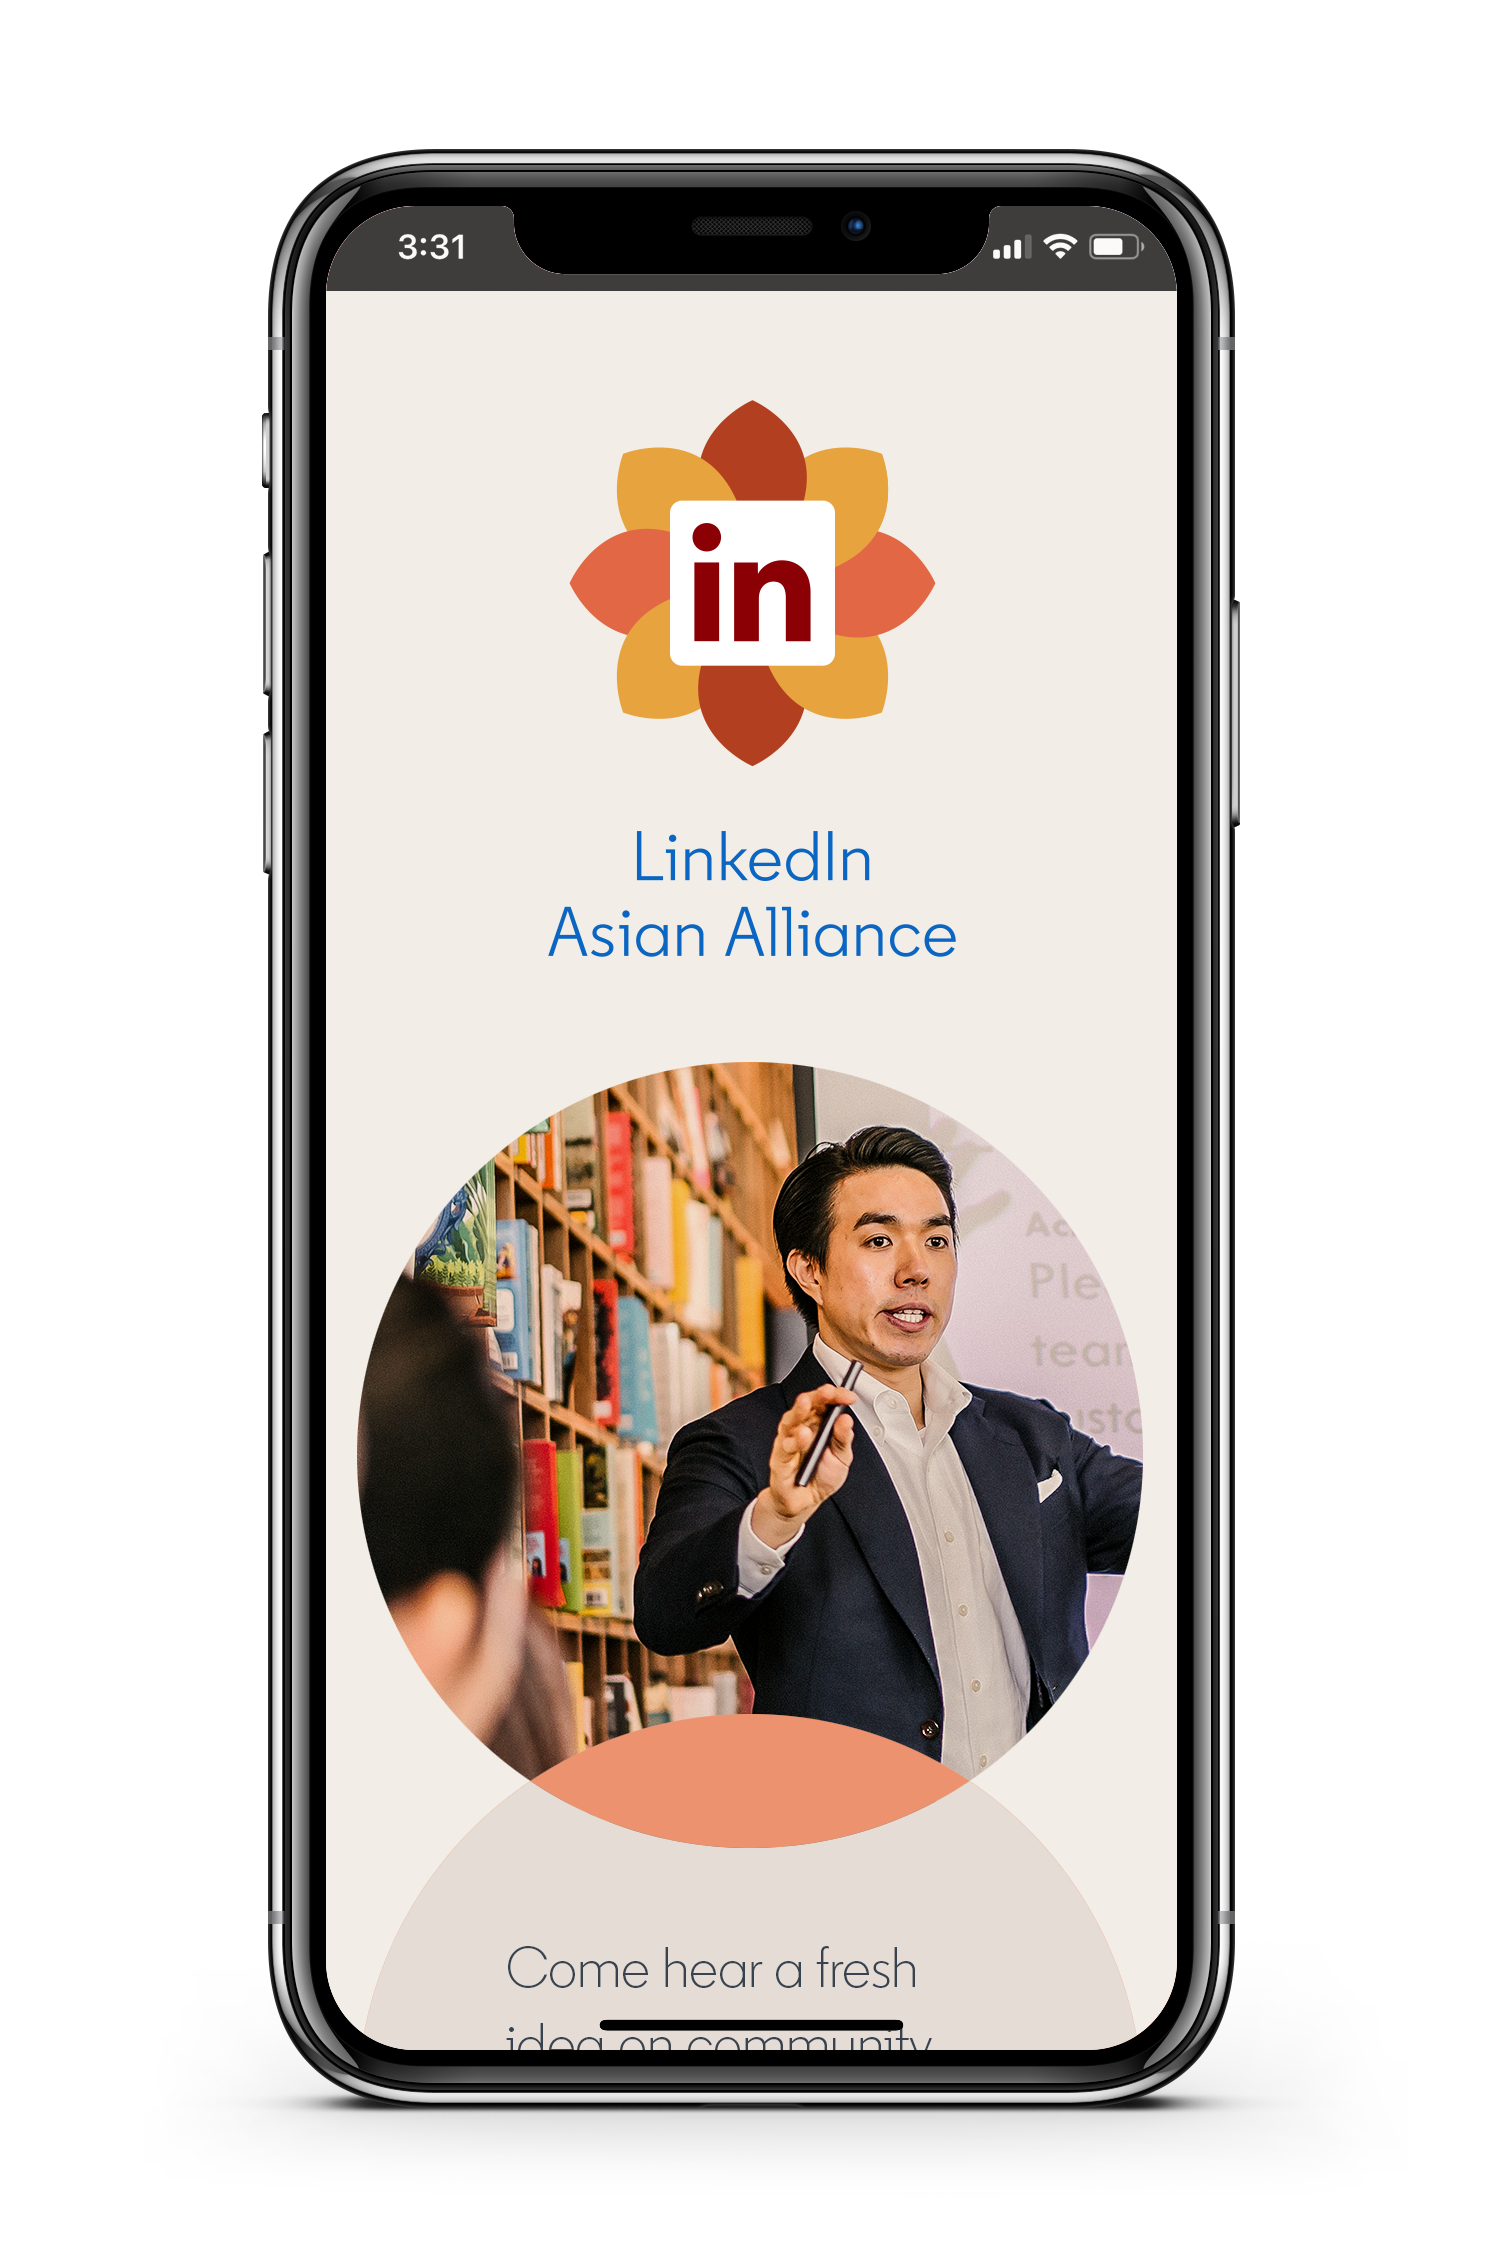 LinkedIn Employee Resource Group Asian Alliance webpage with man speaking on iPhone